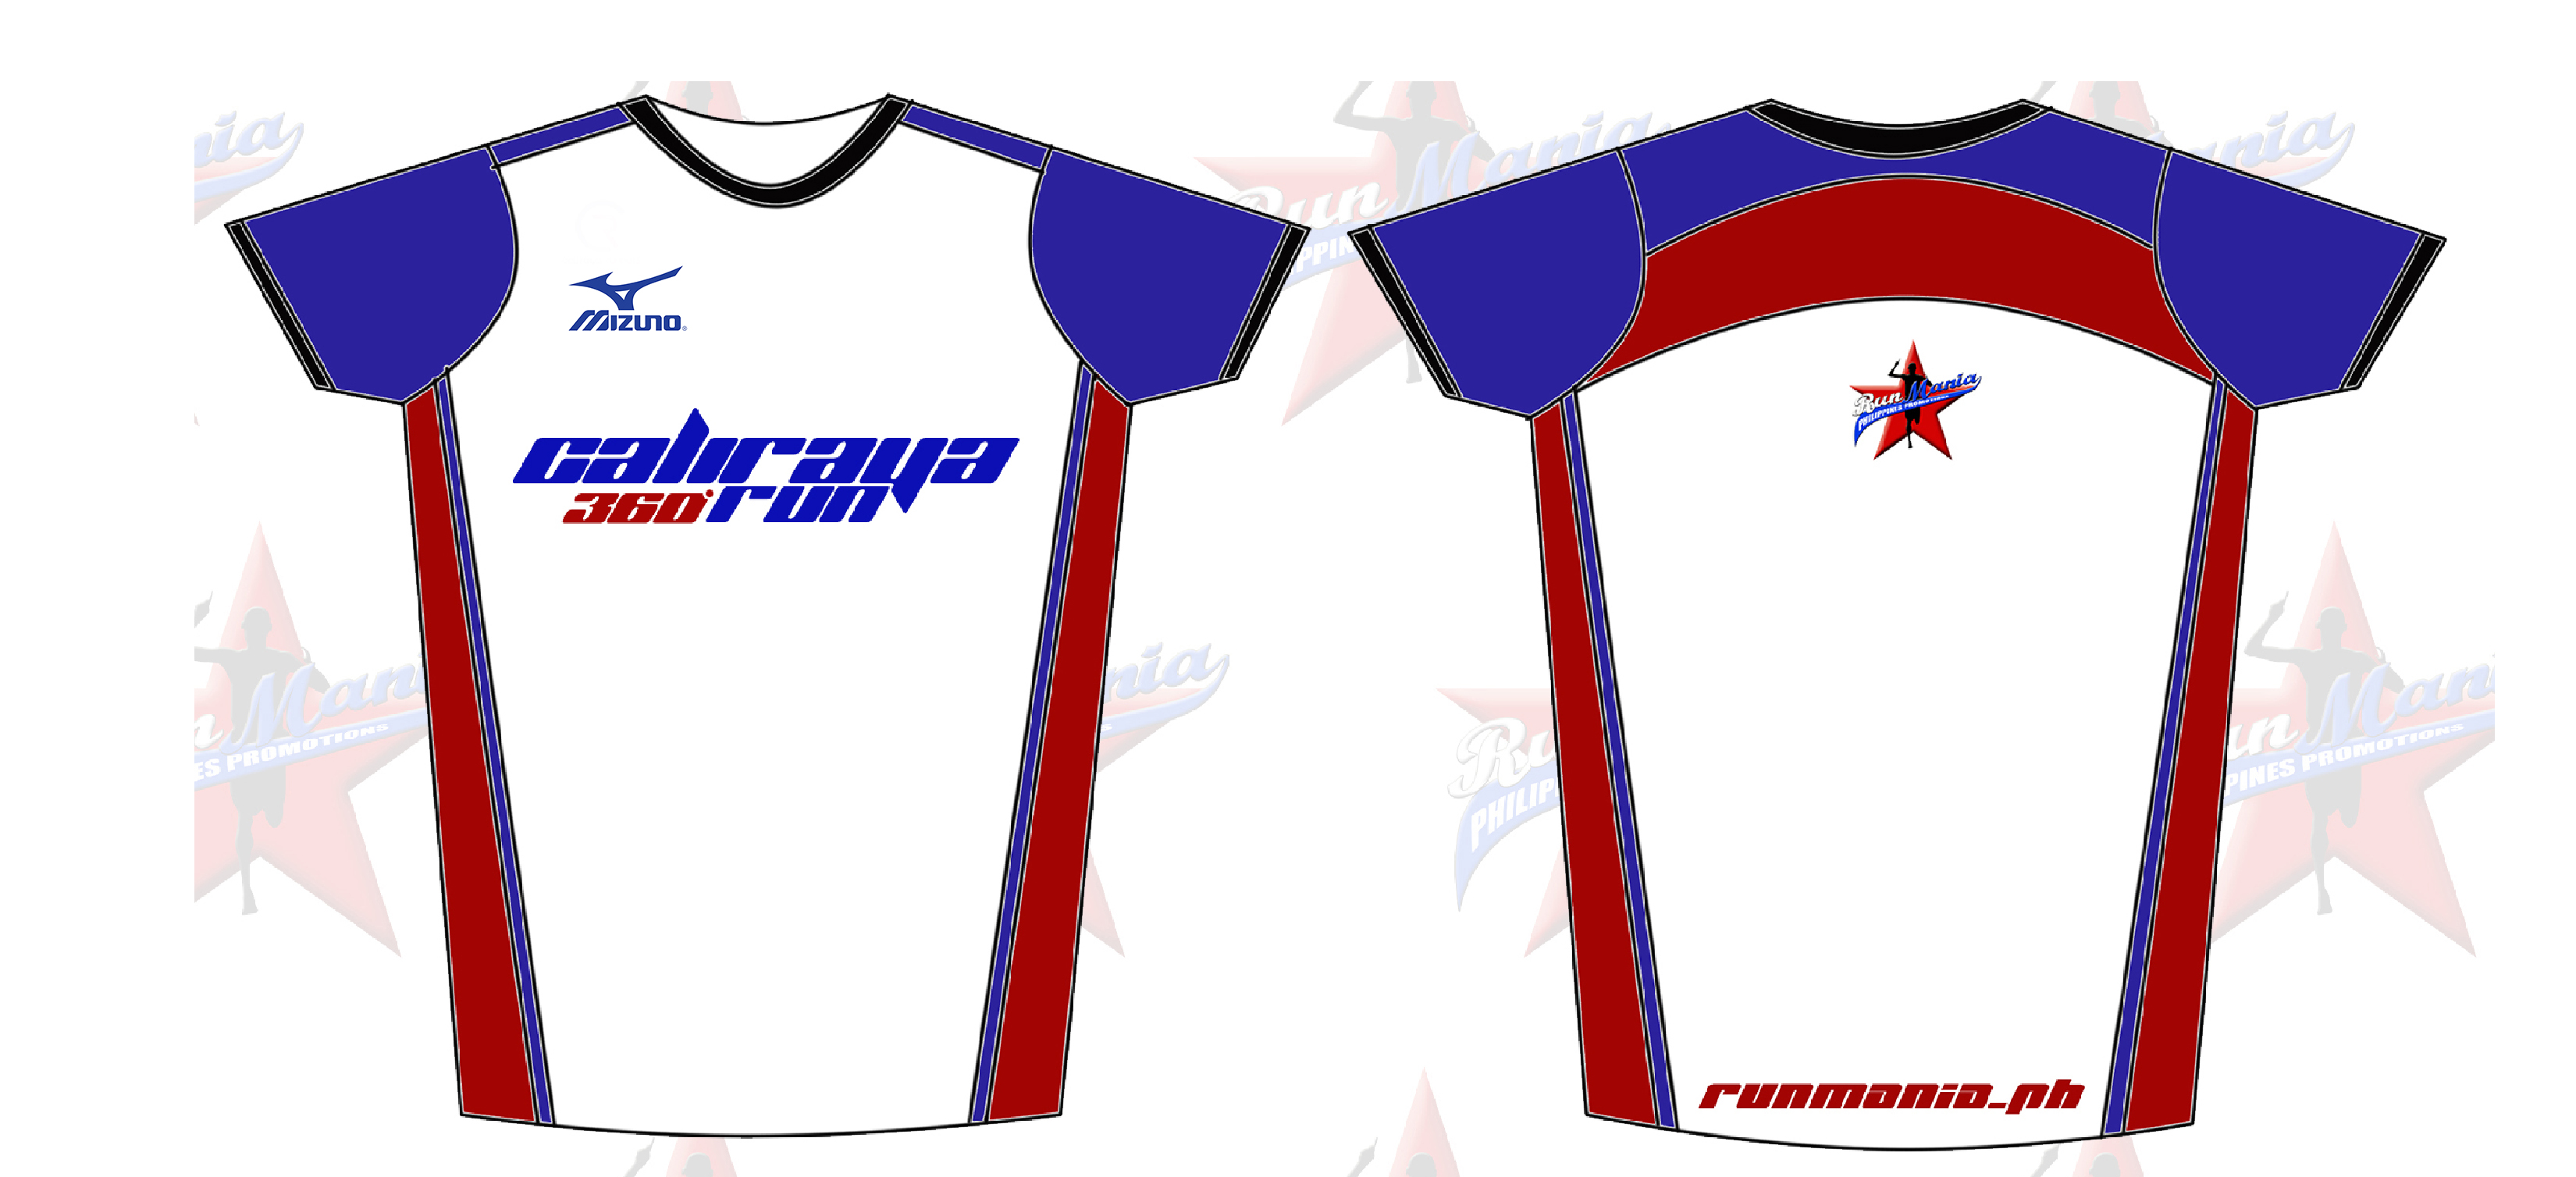 caliraya-360-run-2013-finisher-shirt-design